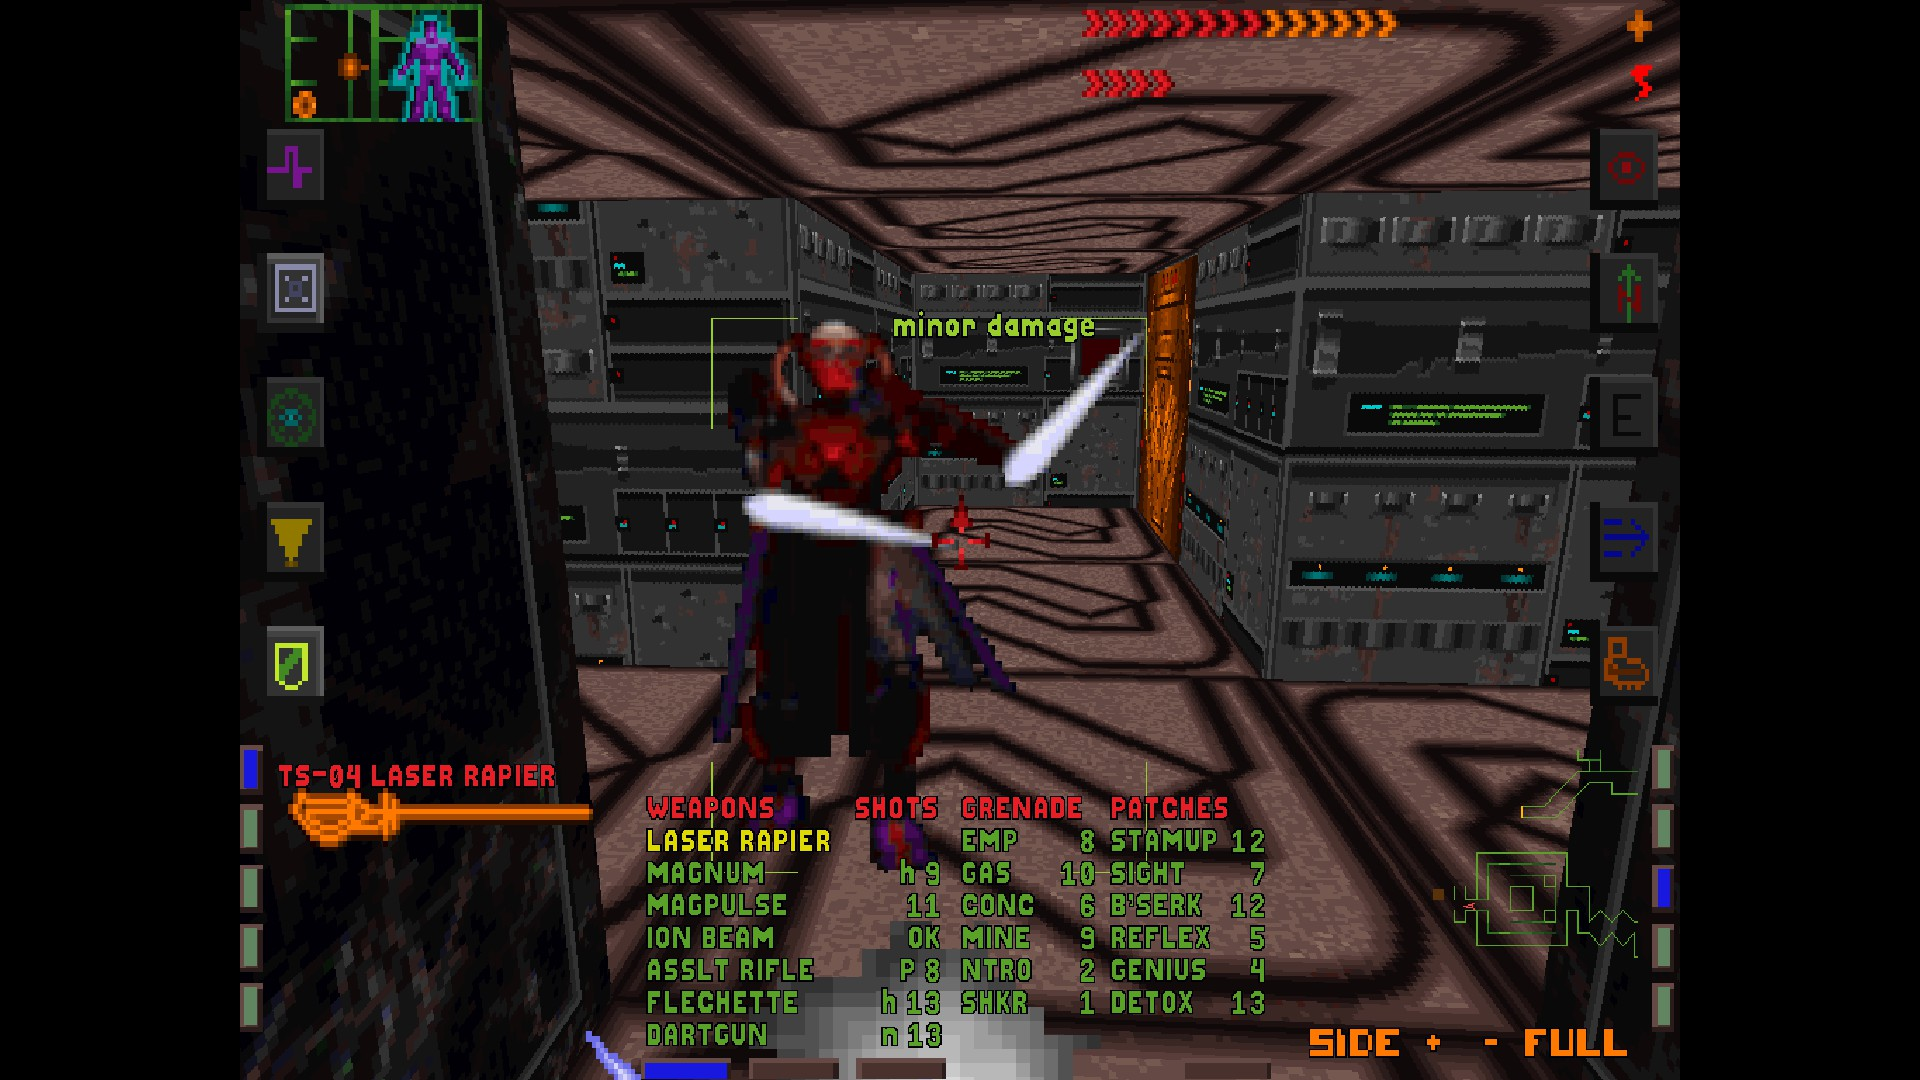 System Shock (1994) and Quake (1996) review | The Anomalous Host